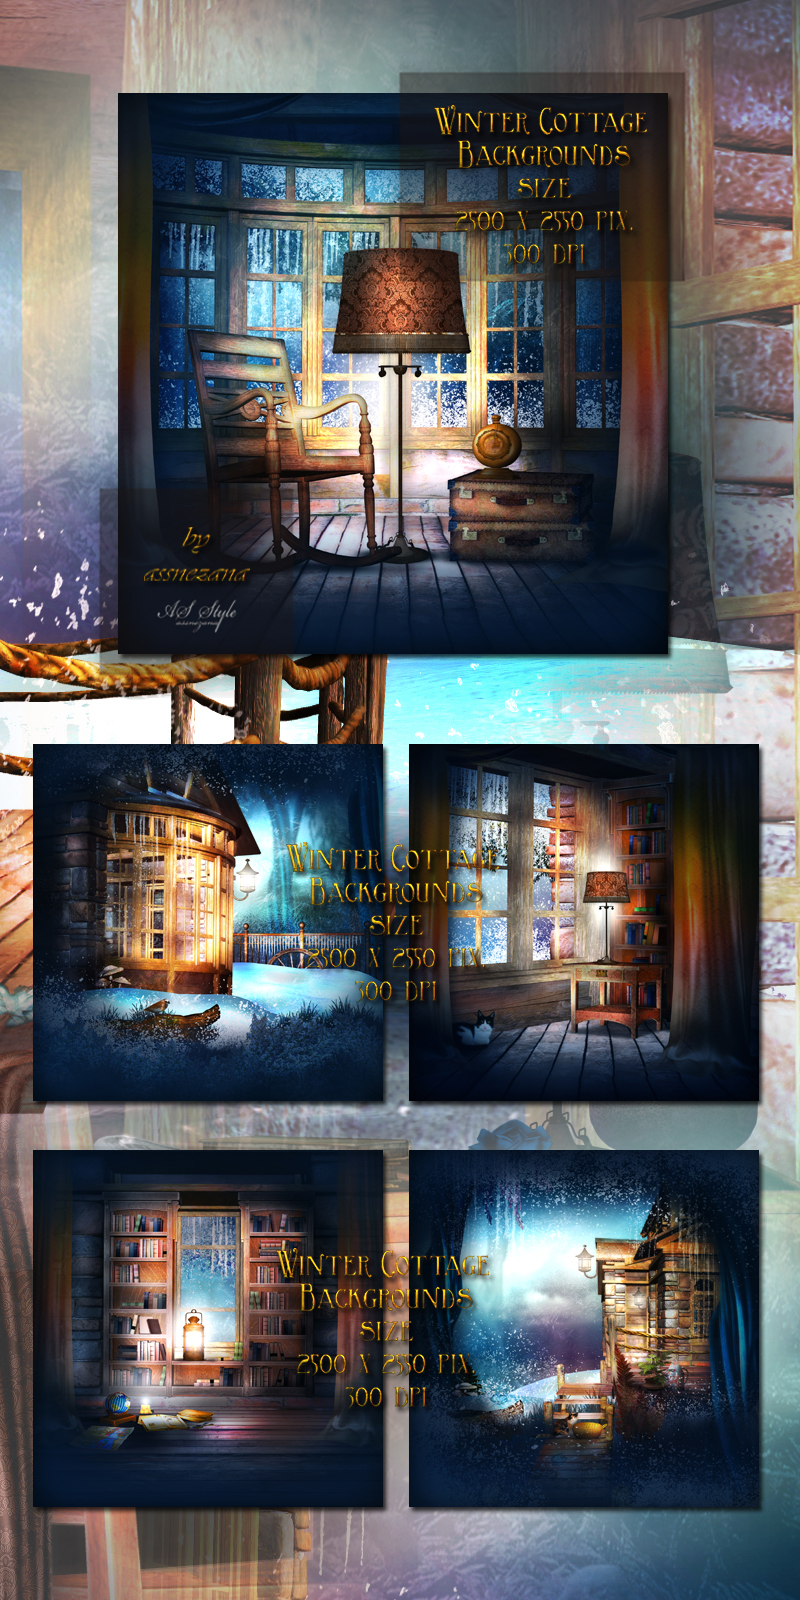 Winter Cottage Backgrounds